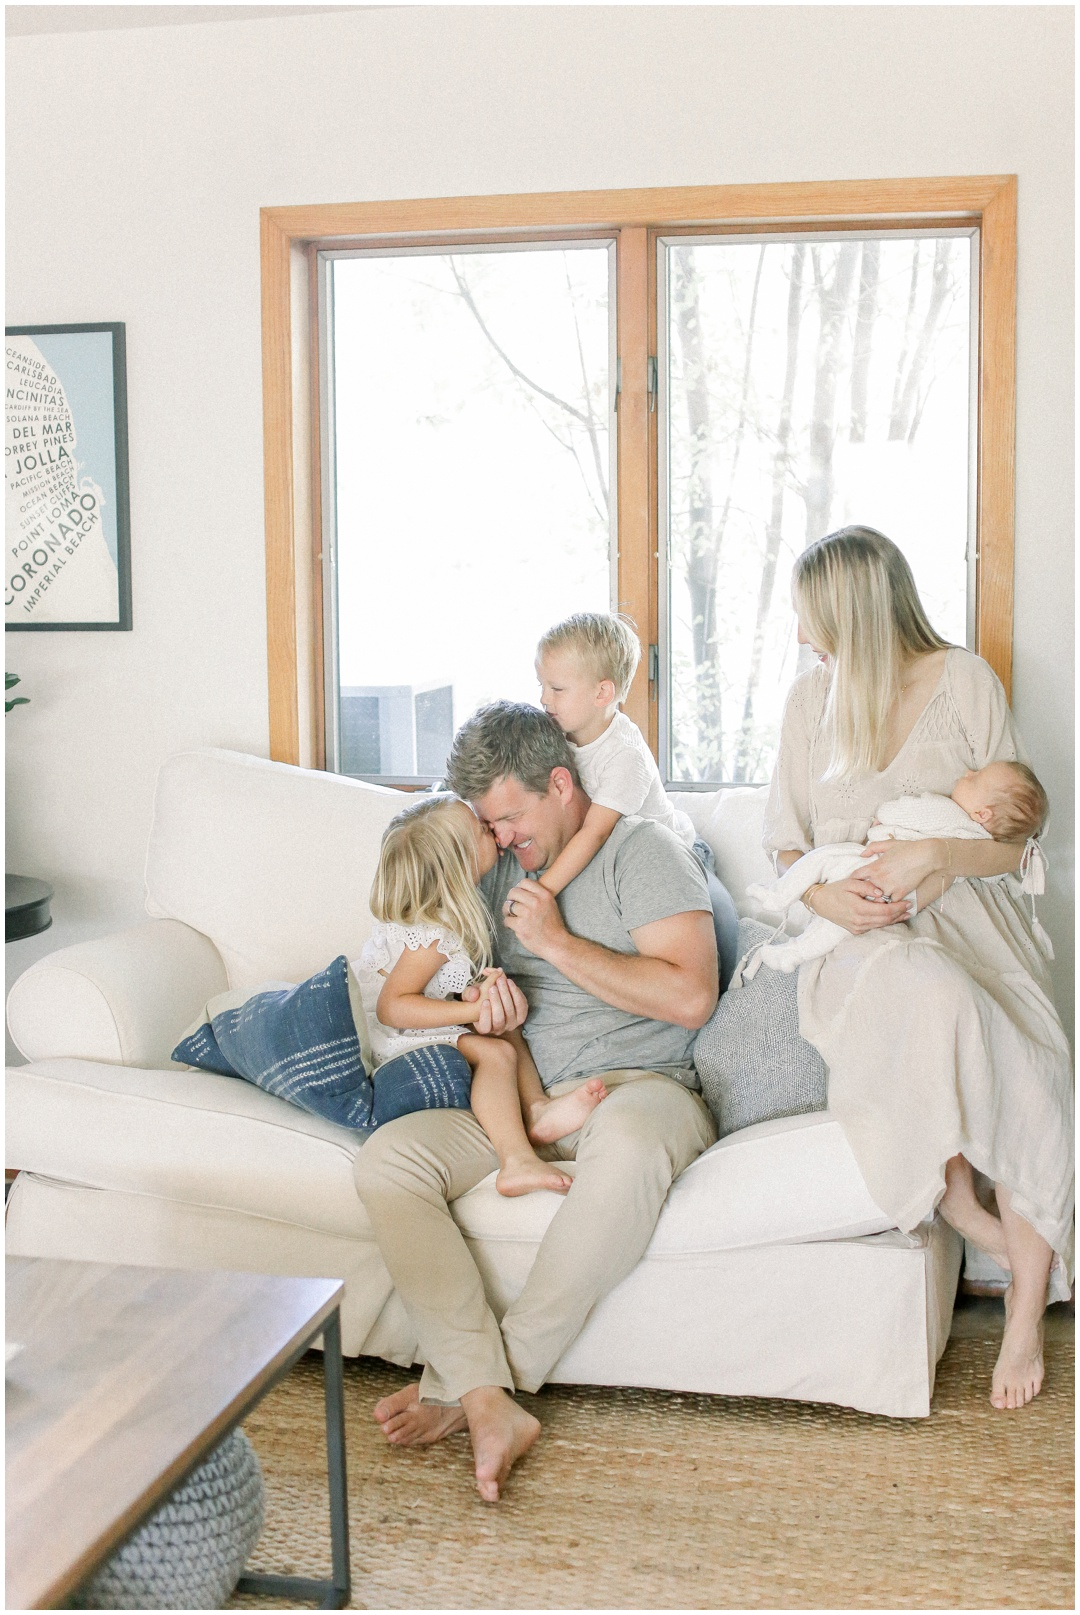 Newport_Beach_Newborn_Light_Airy_Natural_Photographer_Newport_Beach_Photographer_Orange_County_Family_Photographer_Cori_Kleckner_Photography_Newport_Beach_Photographer_Courtney_Roach__4088.jpg